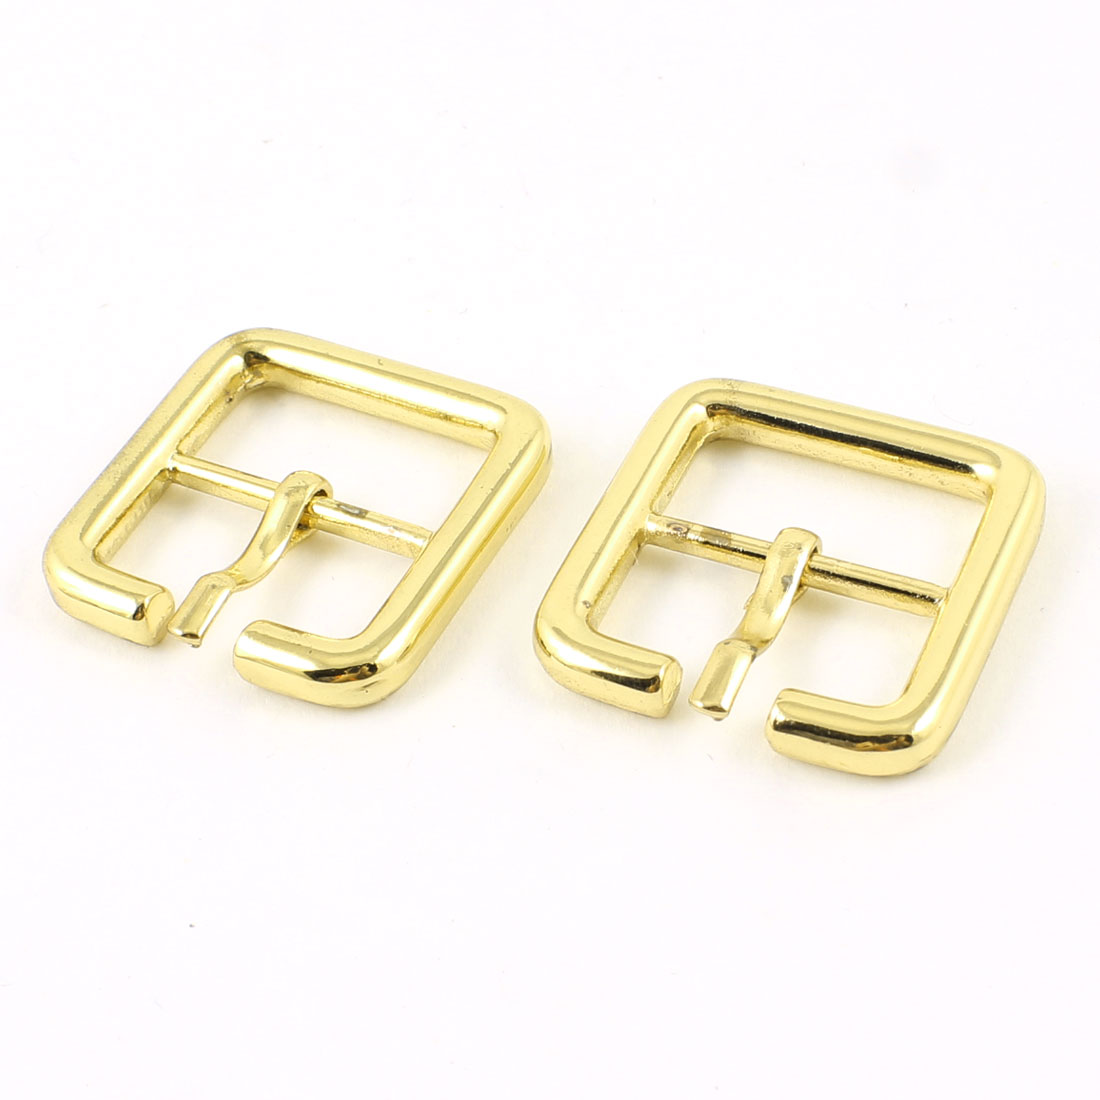 2 Pcs Metal Square Shaped High Heel Shoes Component Buckles Gold Tone